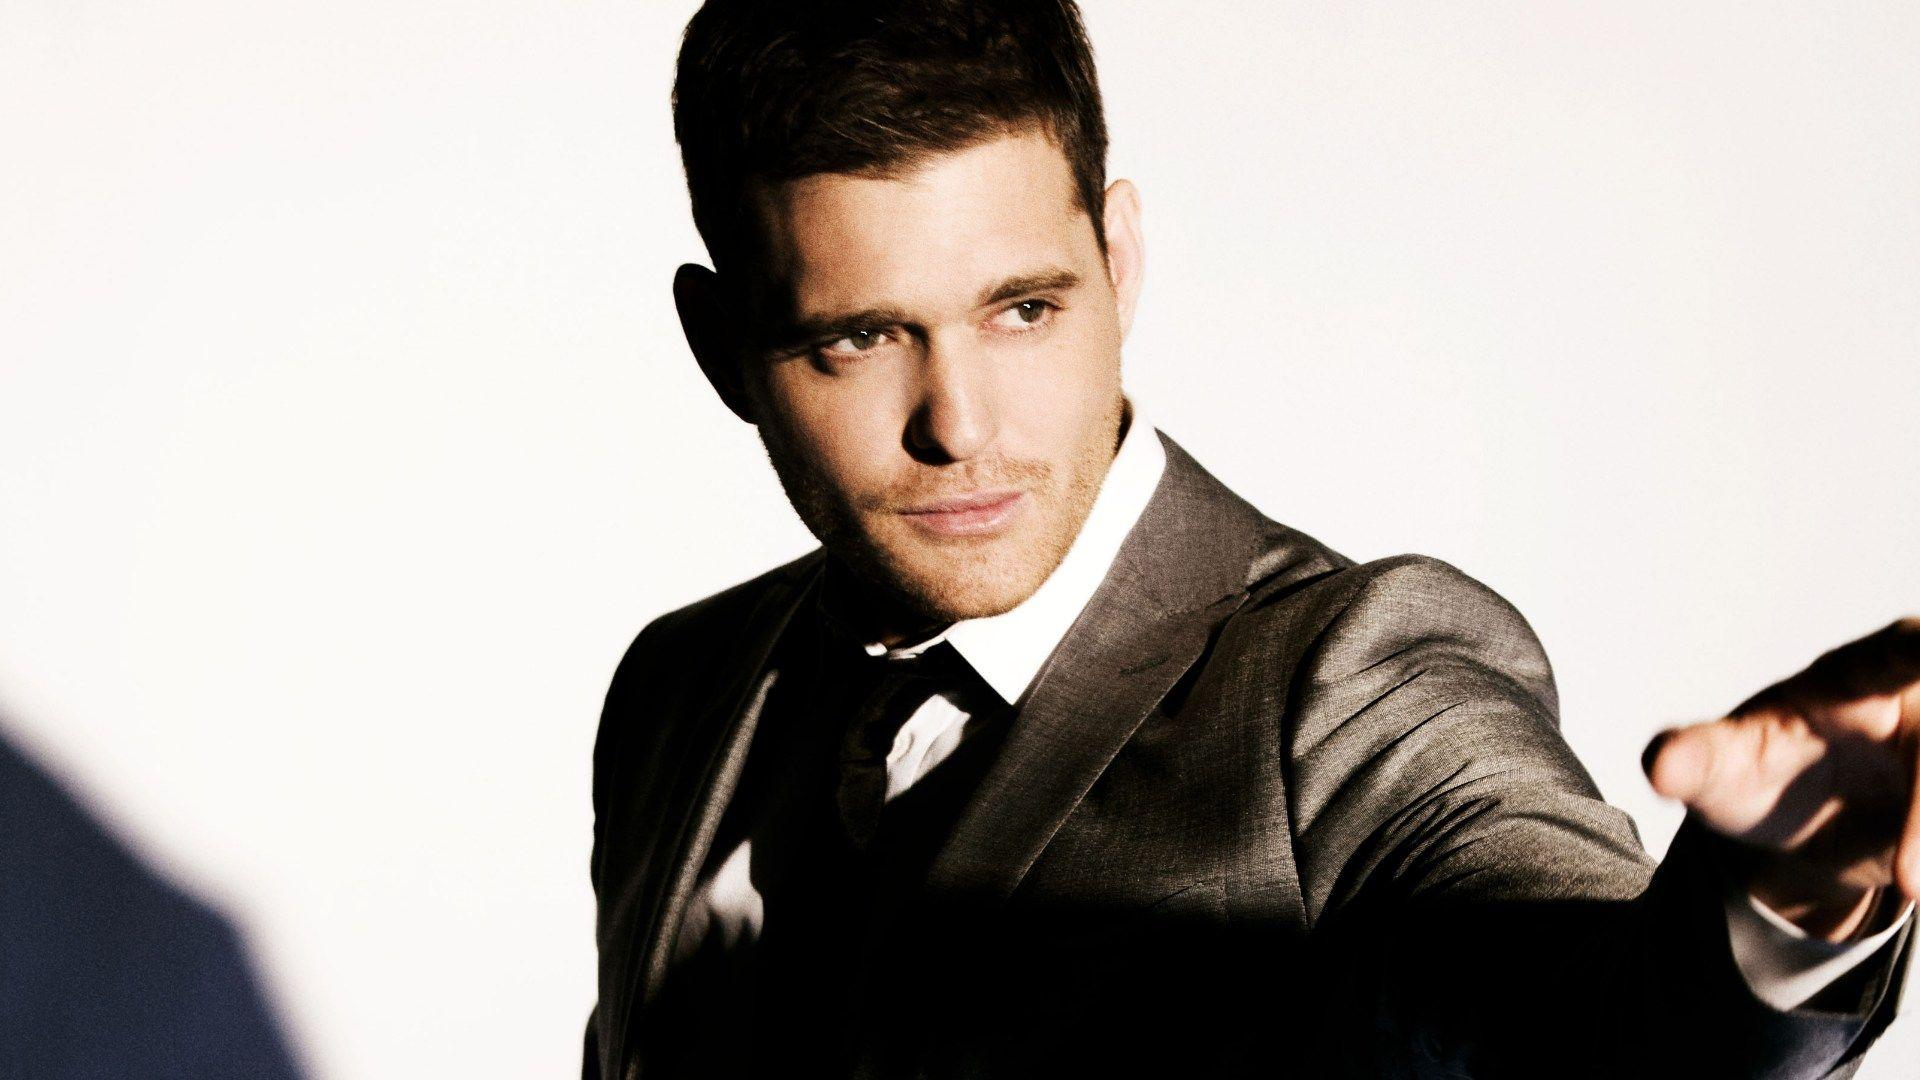 6 Michael Bublé HD Wallpapers